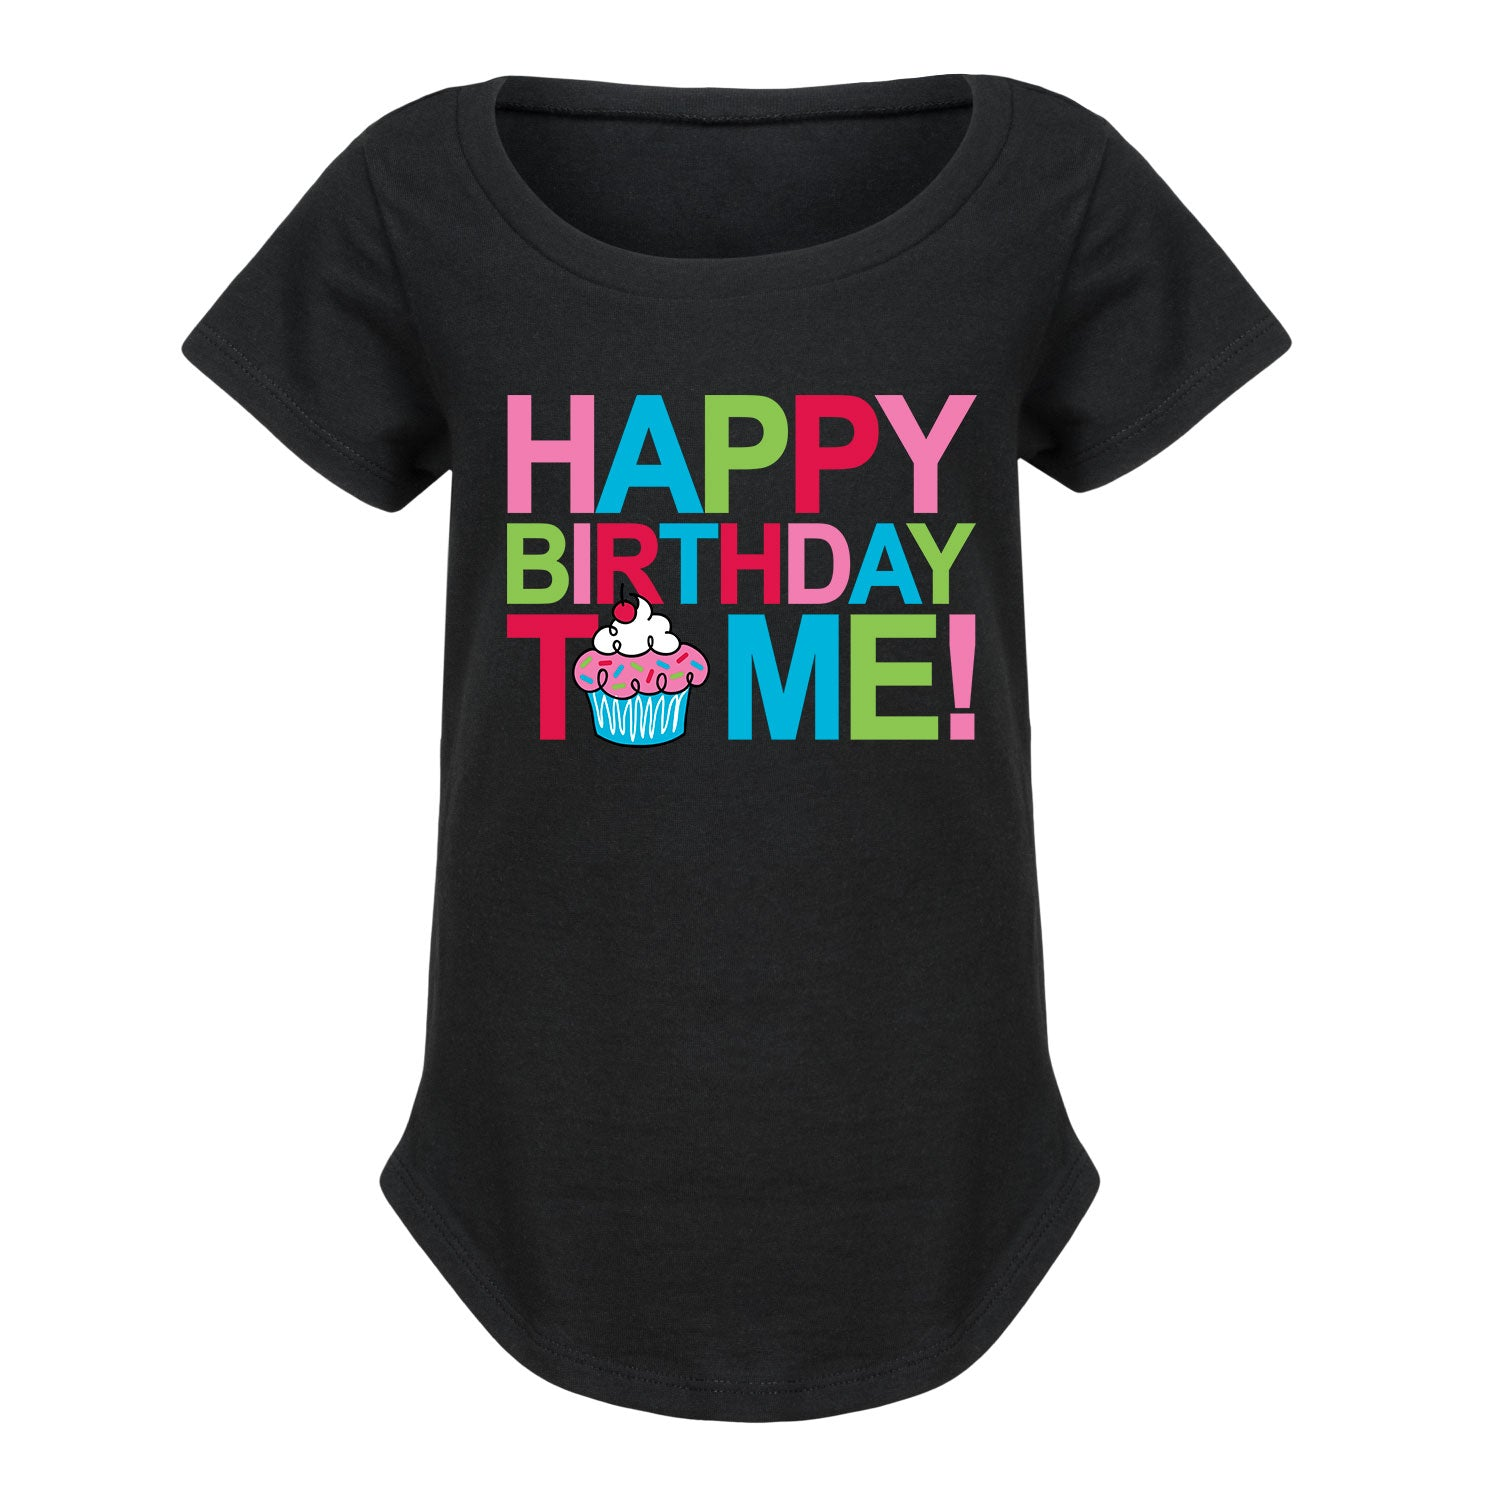 Toddler Girls Short Sleeve T-Shirt